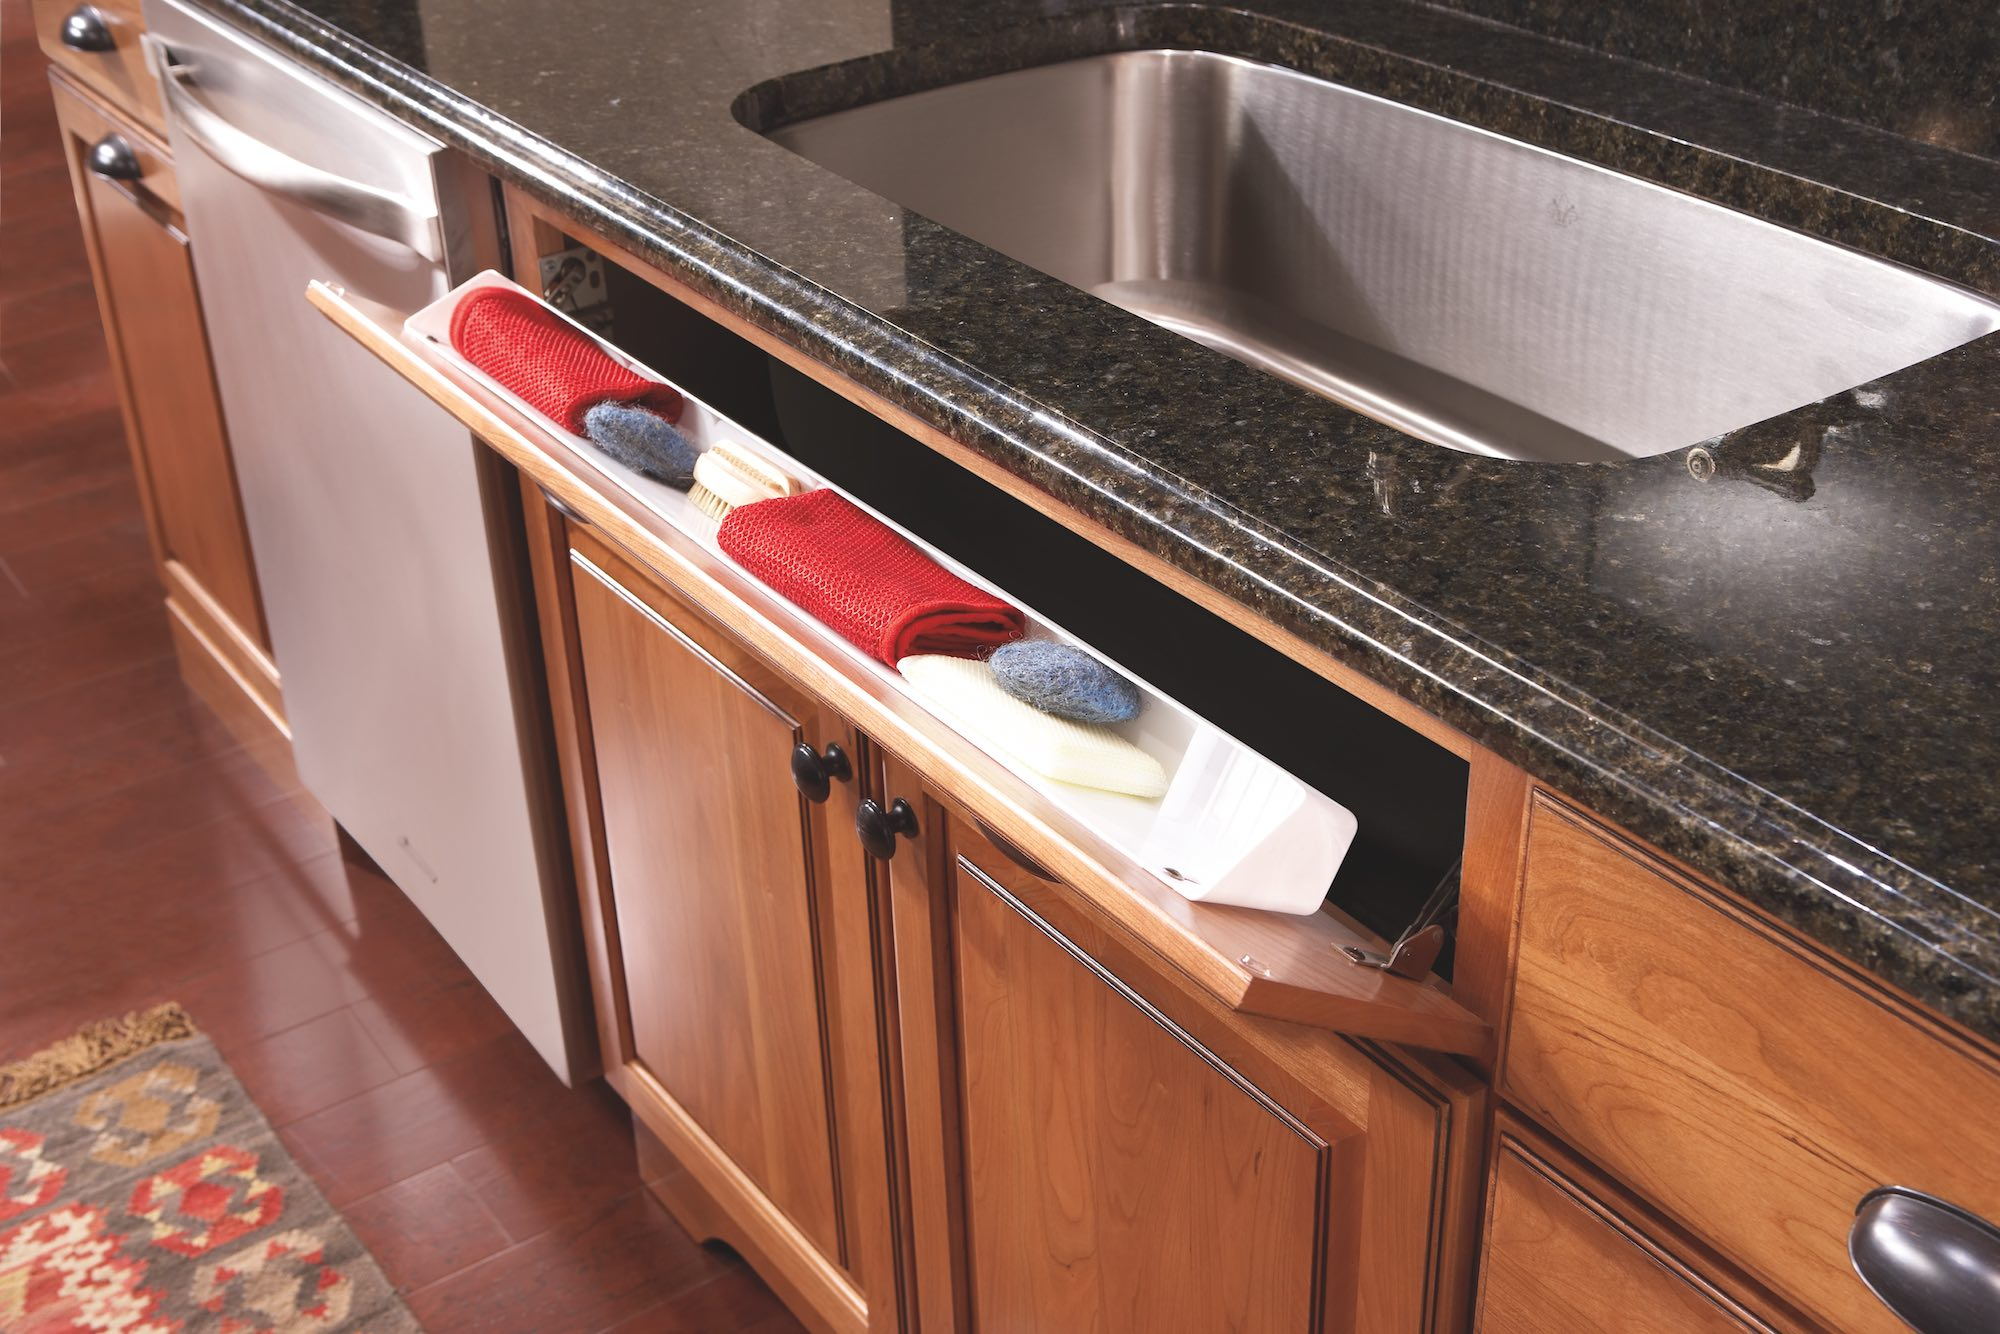 Kitchen Sink Cabinet Tray Mid State Kitchens Wholesale Kitchens Cabinets Design